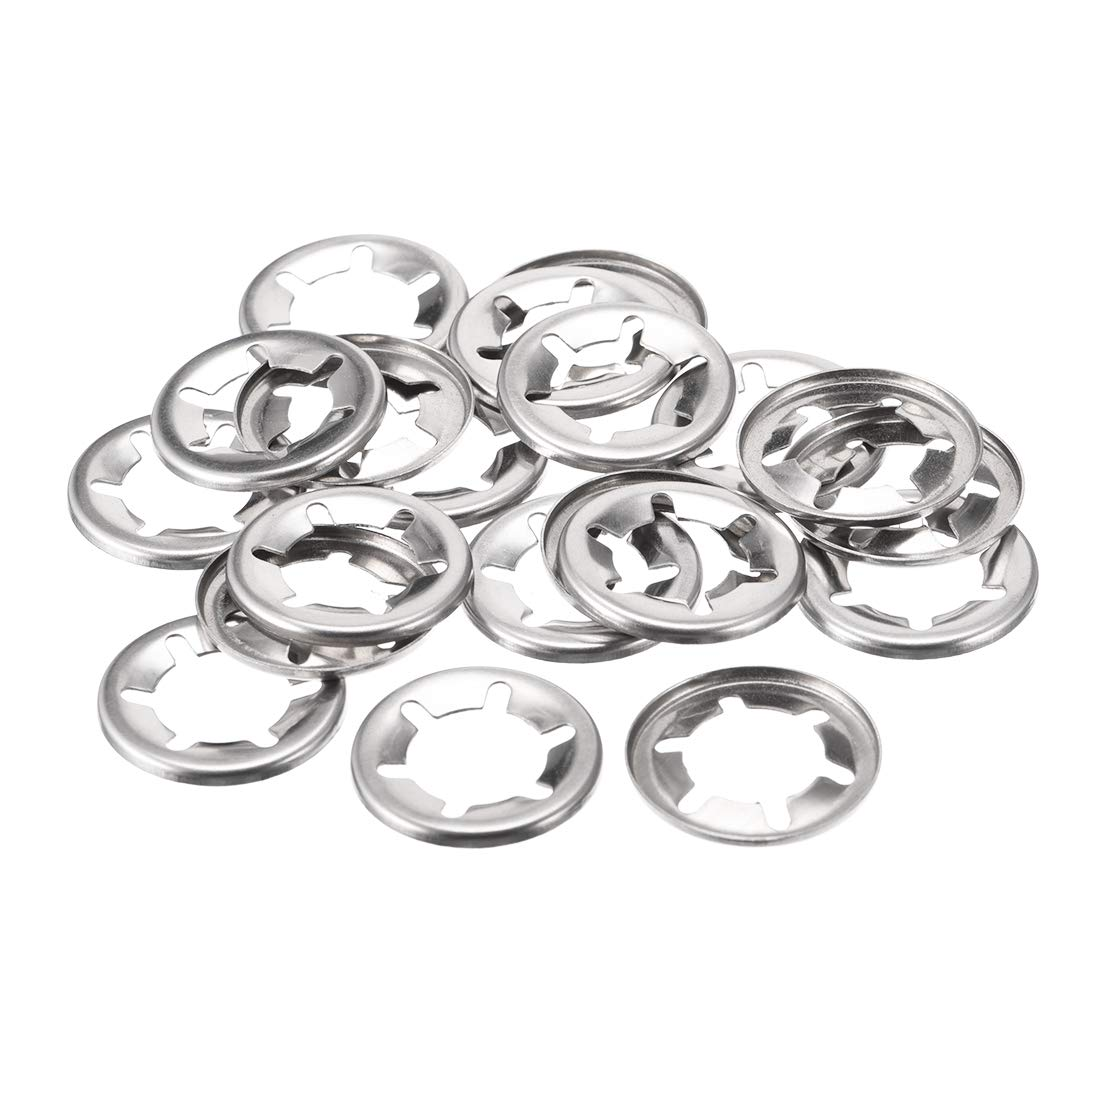 uxcell M16 Starlock Washer 15.3mm I.D. 28mm O.D. Internal Tooth Lock Washers Push-On Locking Speed Clip 304 Stainless Steel 20pcs